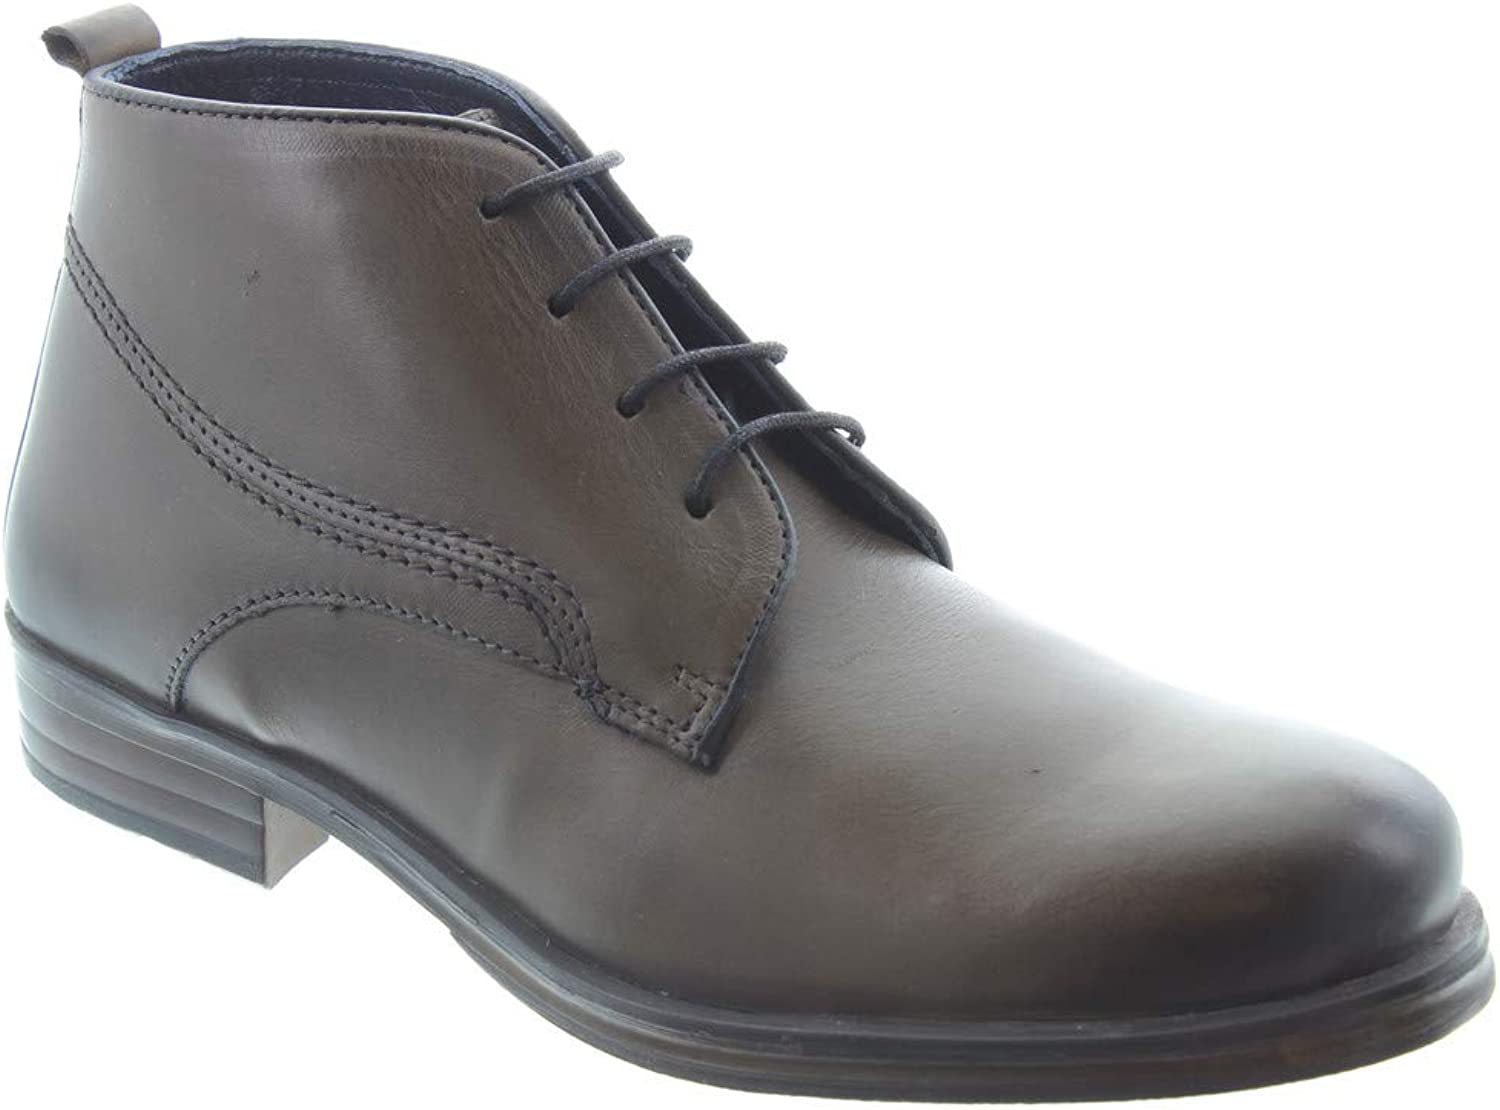 Adesso - Mens Harry Lace Boots in Charcoal